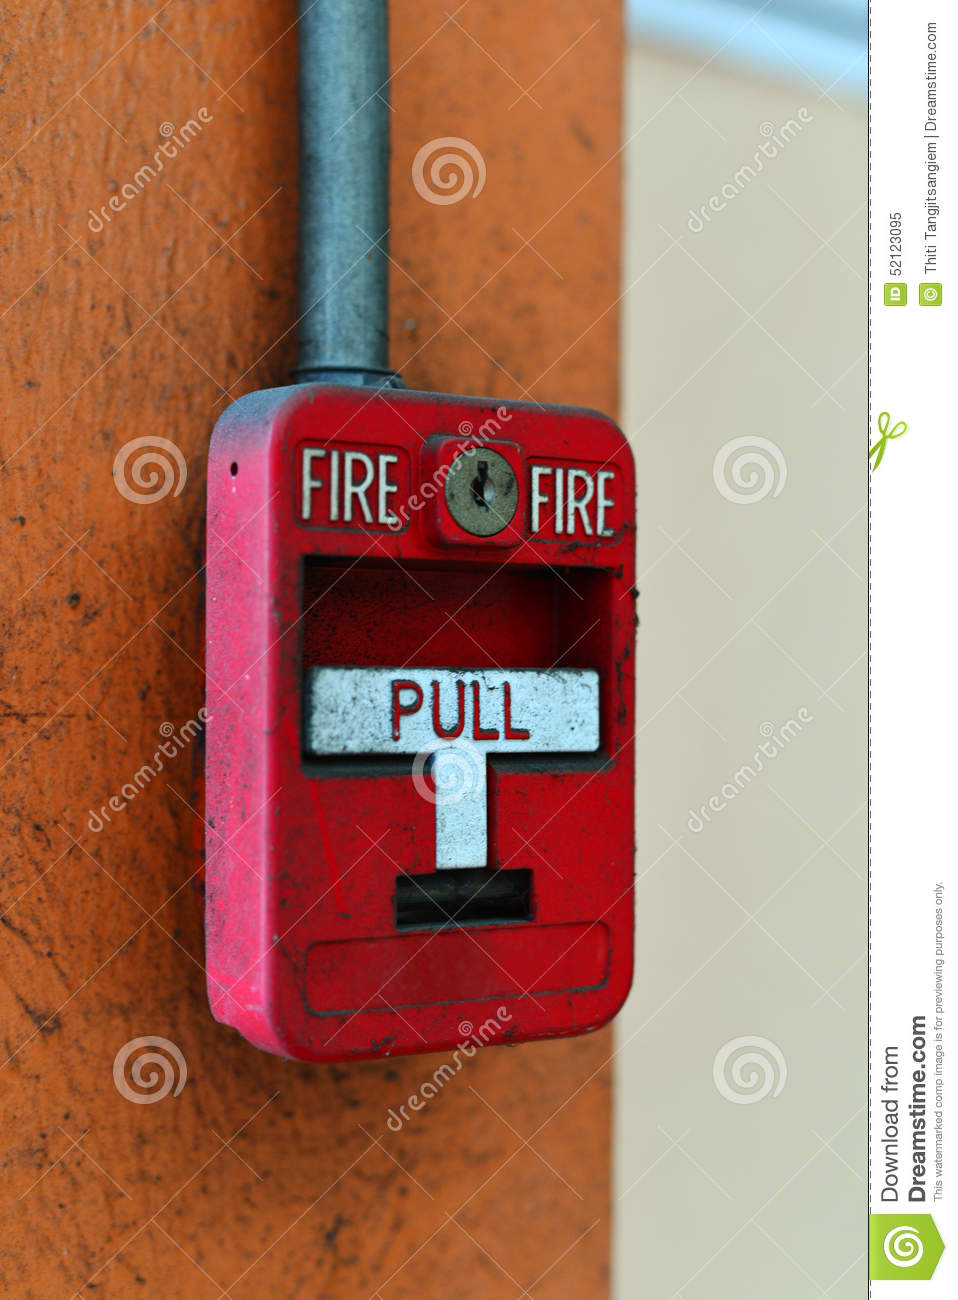 Switch fire alarm on brick wall